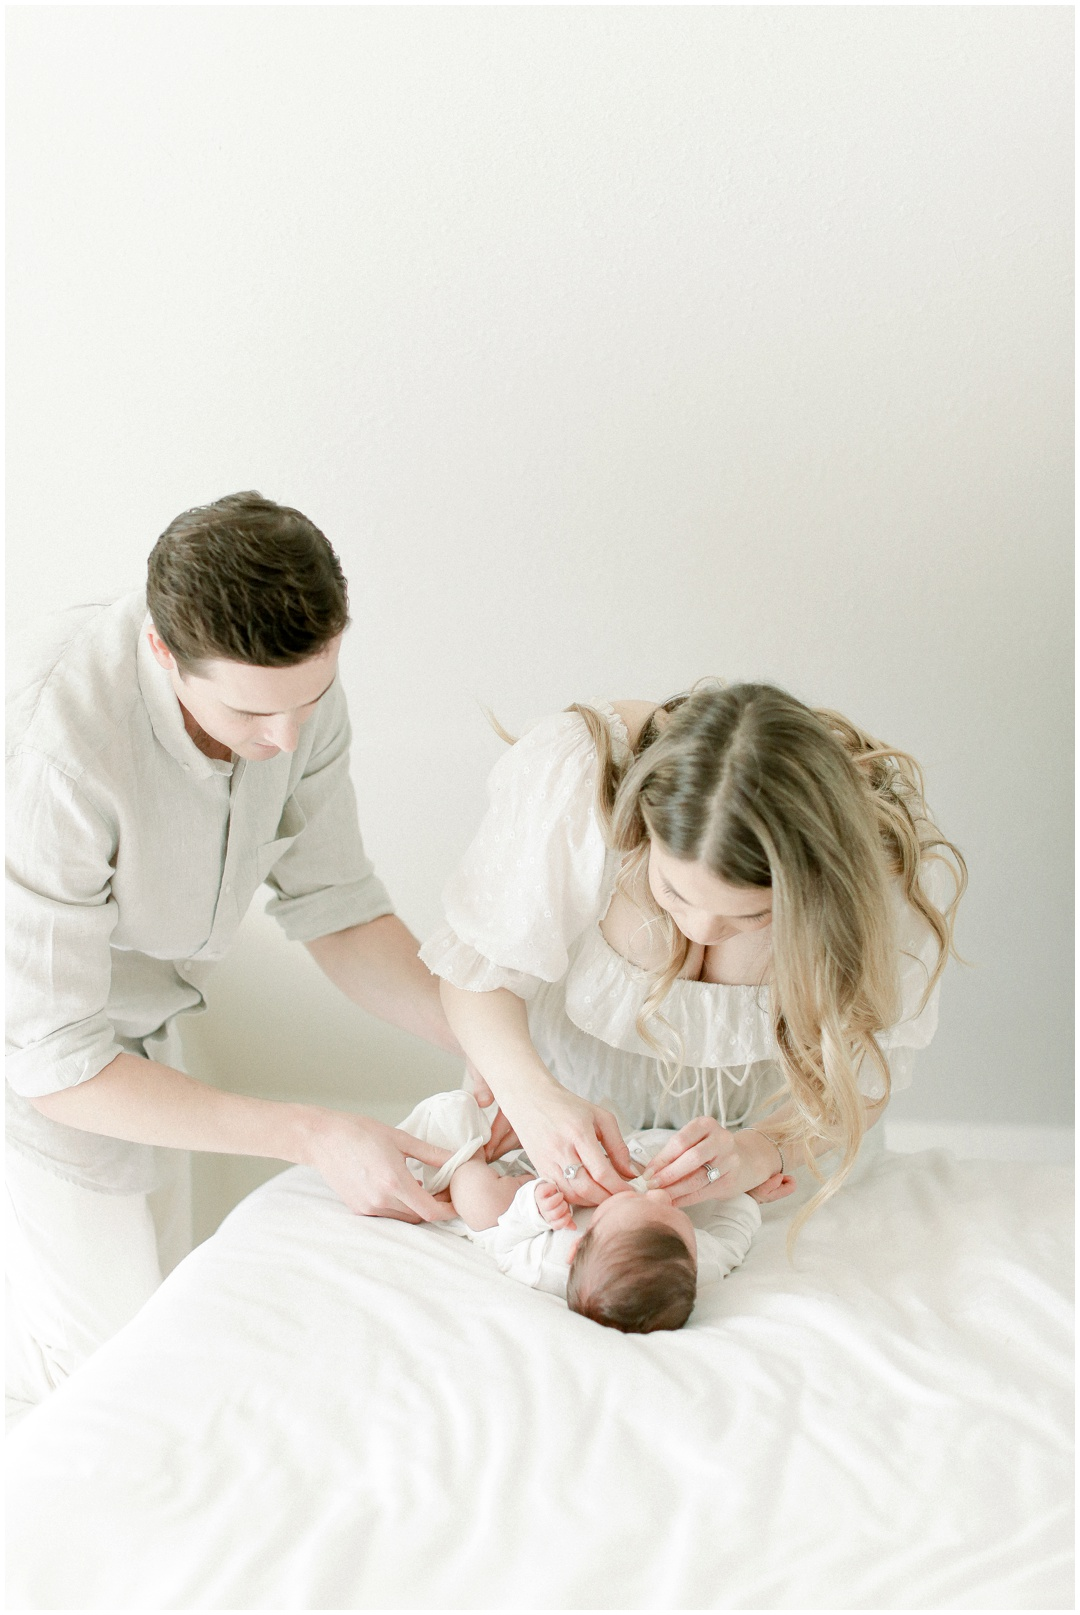 Newport_Beach_Newborn_Light_Airy_Natural_Photographer_Newport_Beach_Photographer_Orange_County_Family_Photographer_Cori_Kleckner_Photography_Huntington_Beach_Photographer_Family_OC_Maternity_Breanna_Santillo__3685.jpg